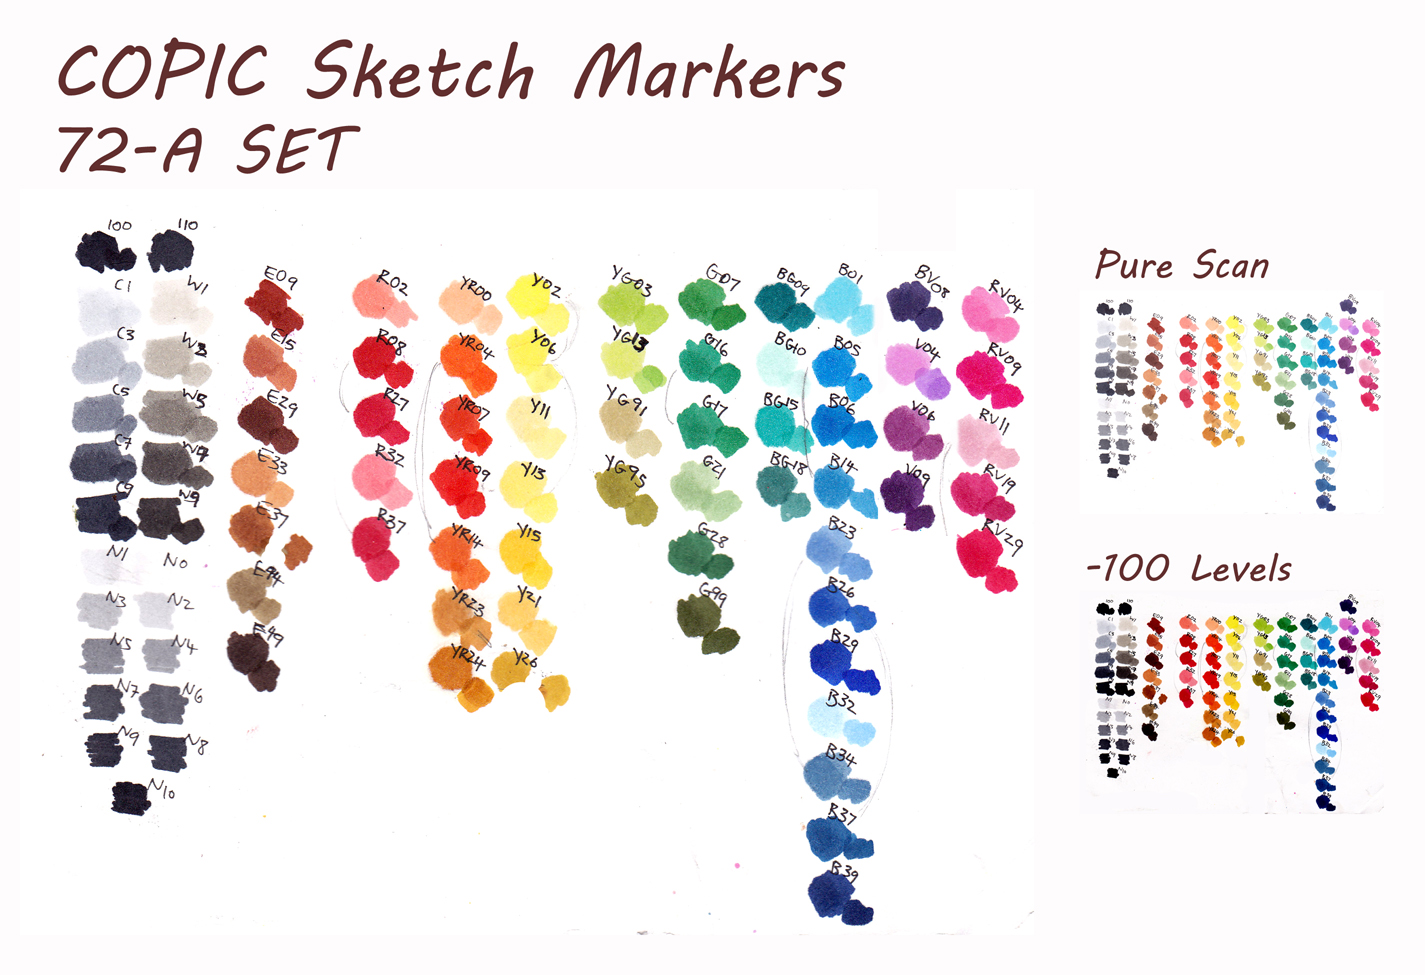 COPIC 72-A Set Color Chart by almyki